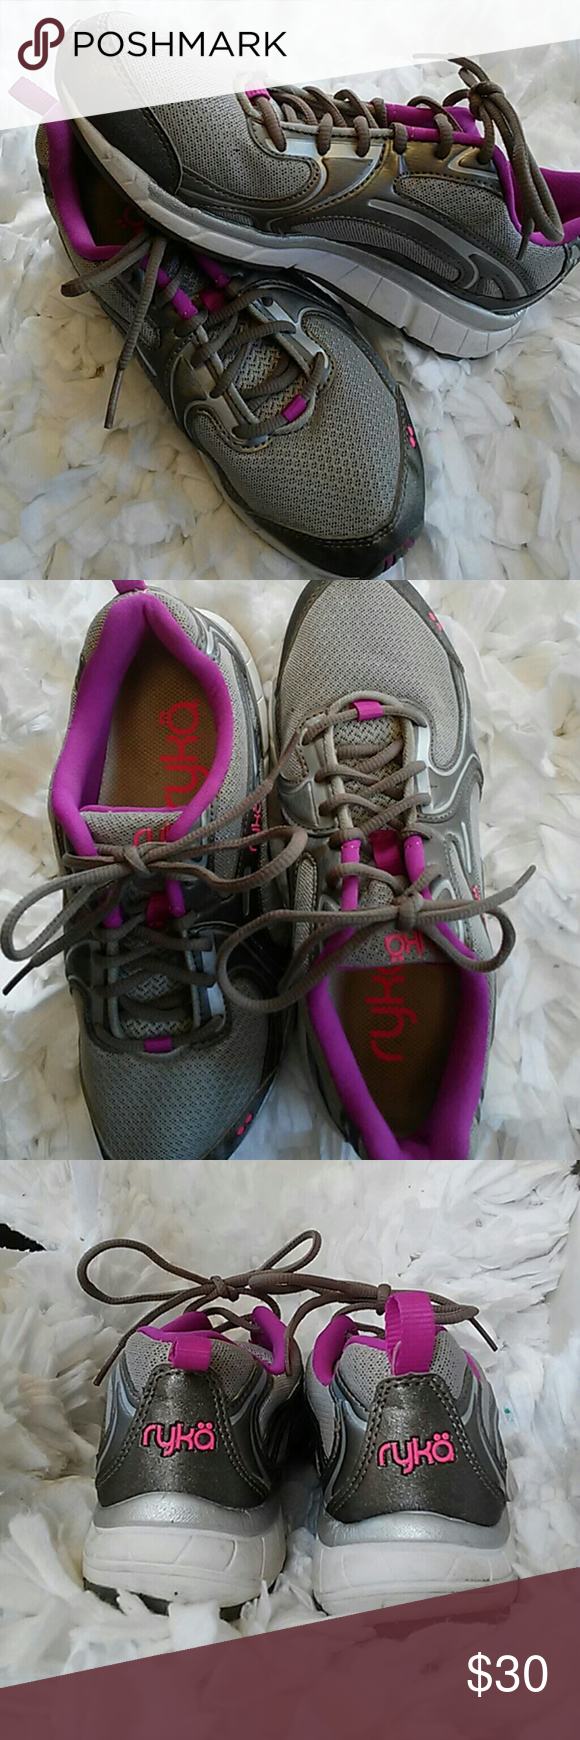 Shoes Ryka Great Womens Shoe Stretch Running Rykas 2 Protigy Are OuXiwkTPZ